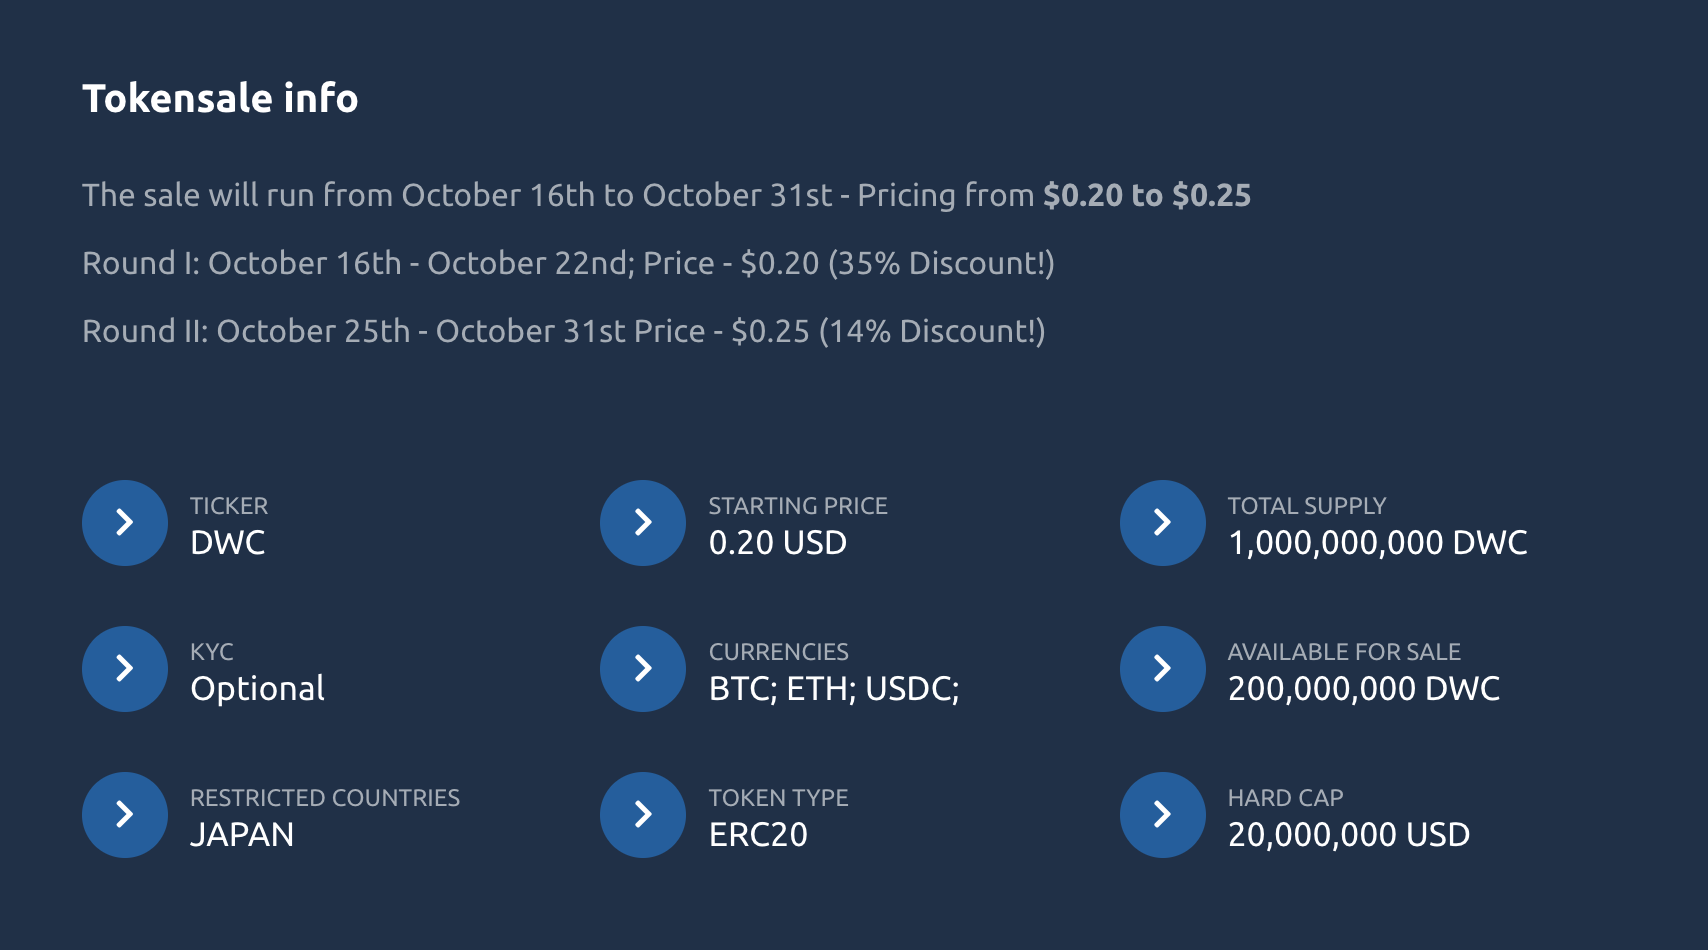 DWC Tokens pricing from 0,20 - 0.25 USD. Currencies: BTC, ETH, USDC.